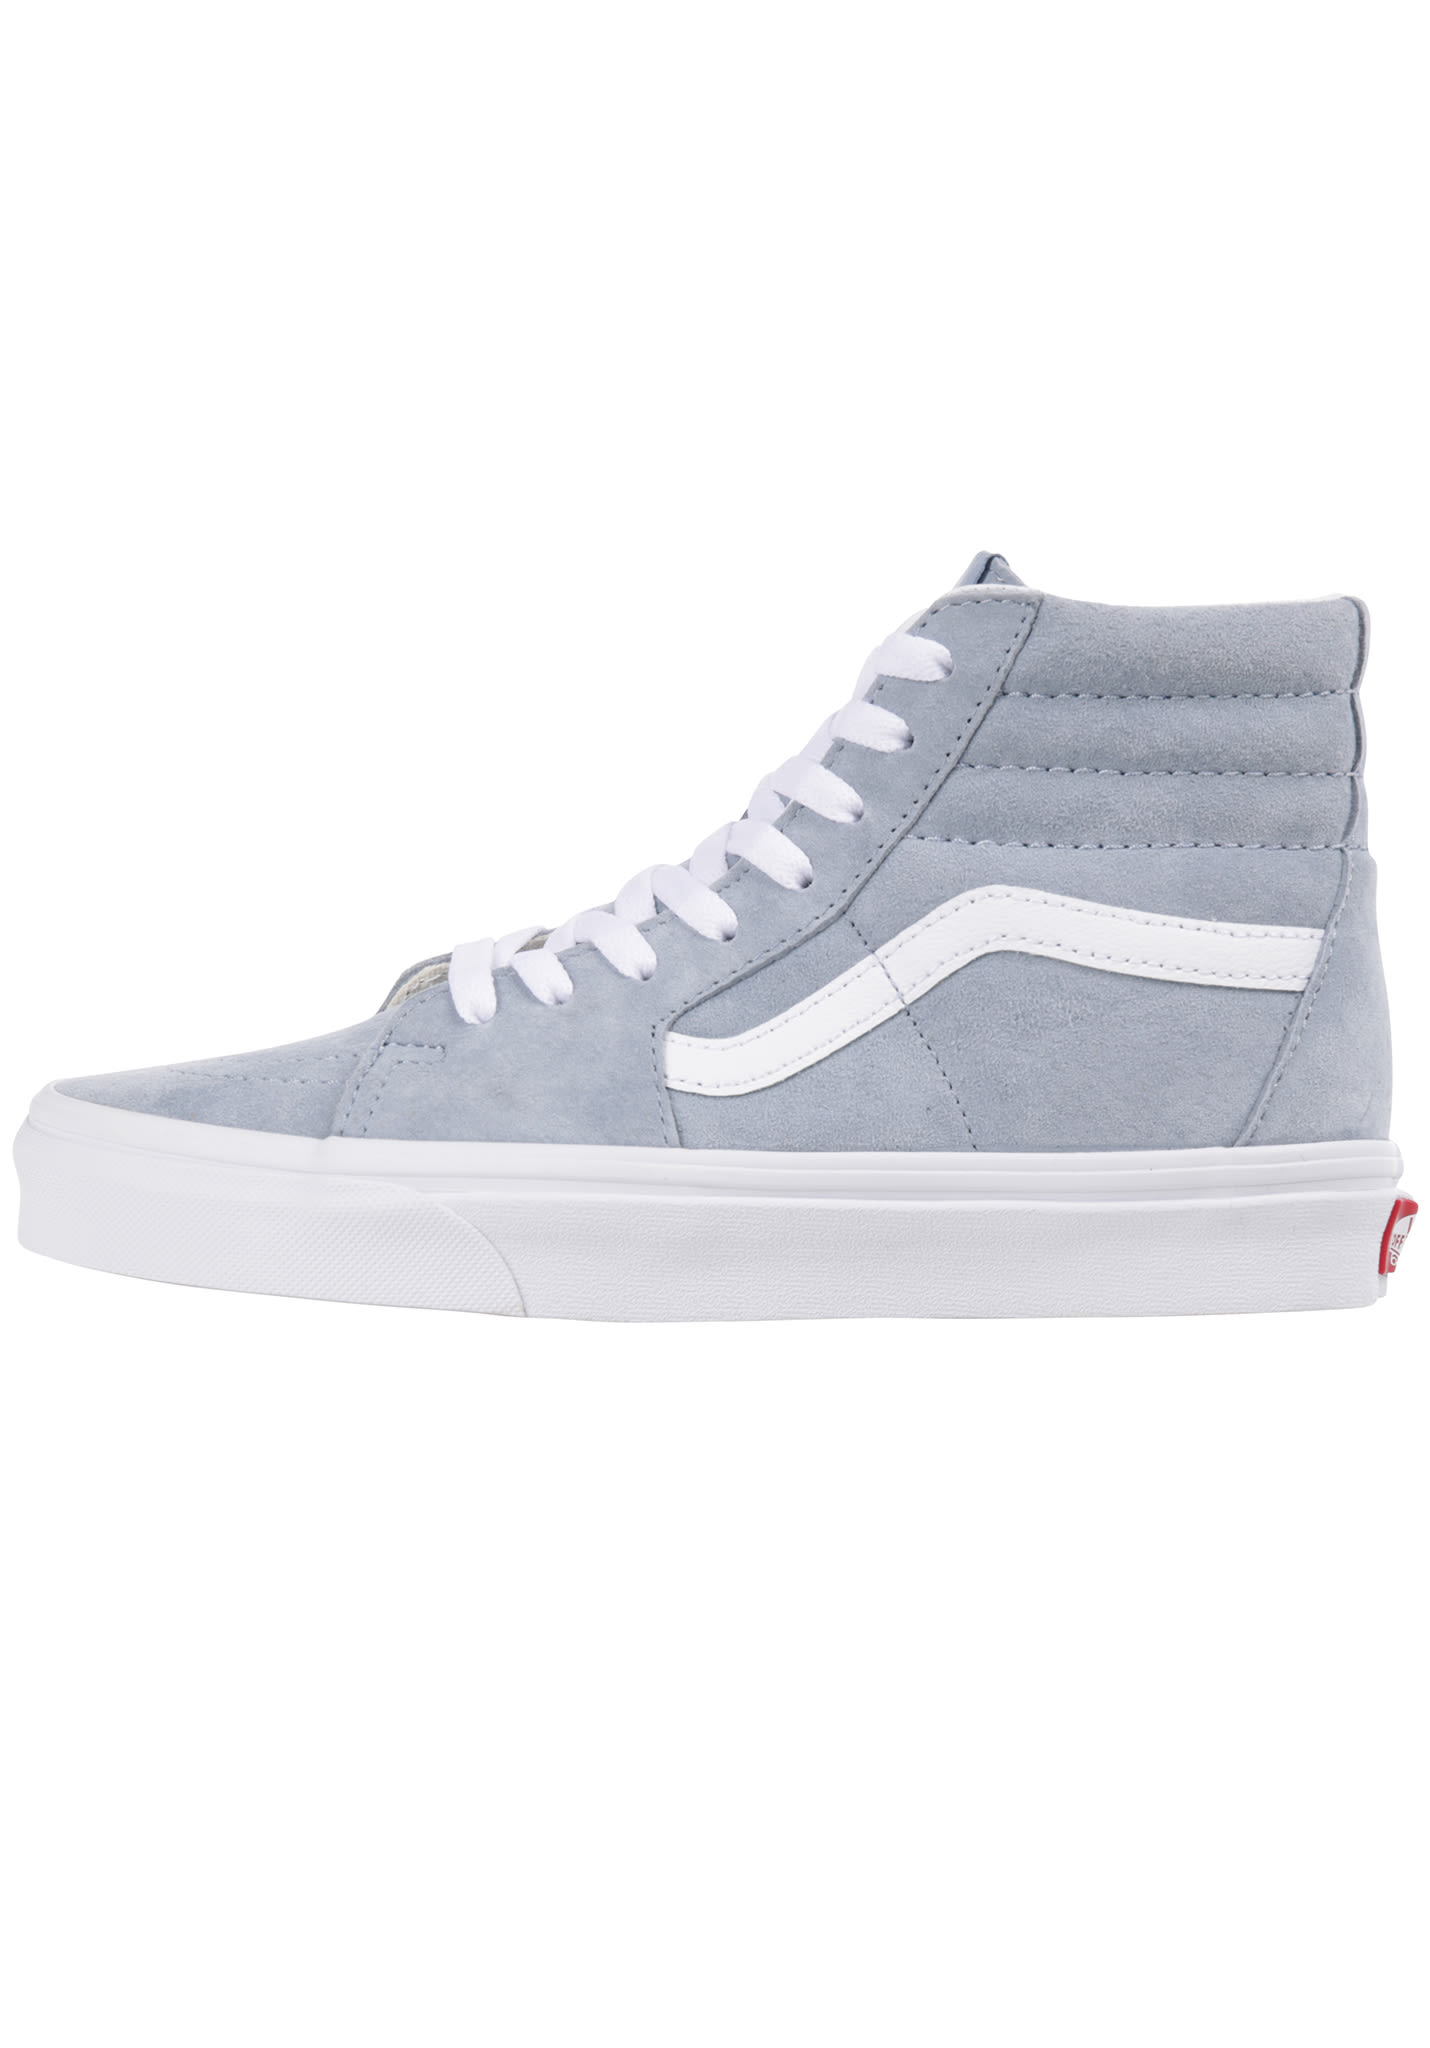 huge selection of 65752 79e67 VANS Sk8-Hi - Sneaker für Damen - Blau